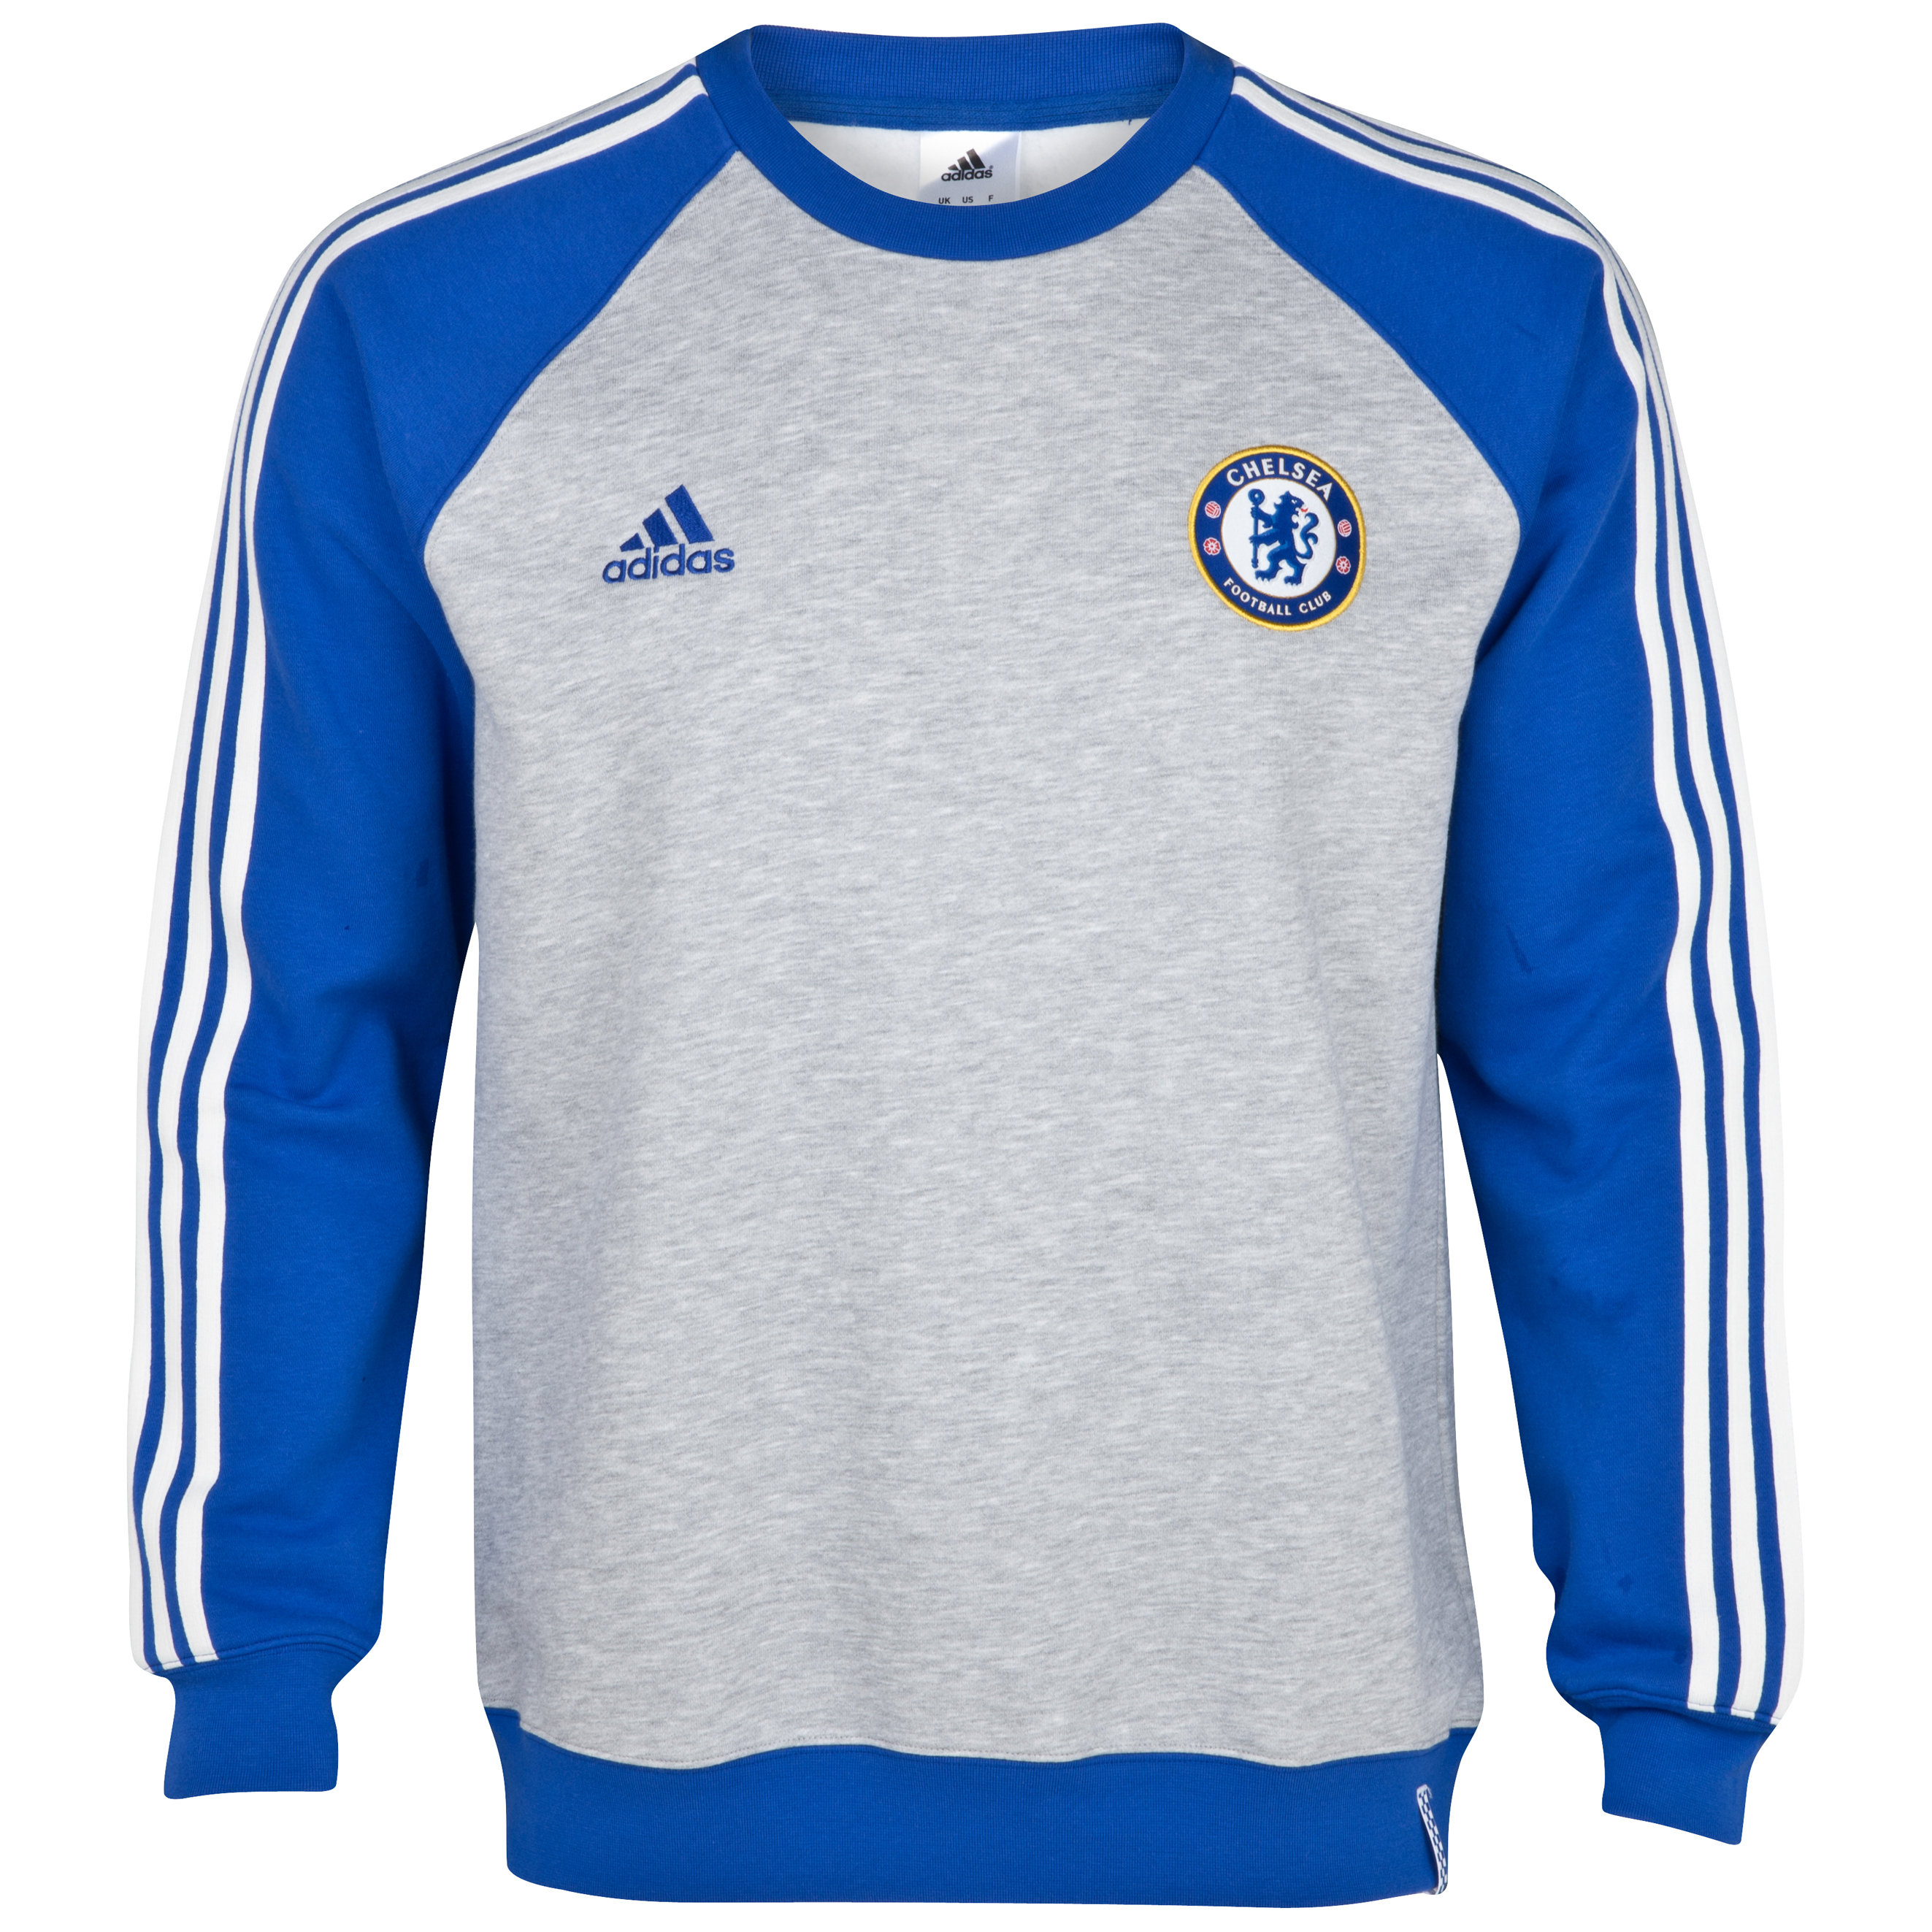 adidas Chelsea Core Sweat Top - Medium Grey Heather/Cfc Reflex Blue/White